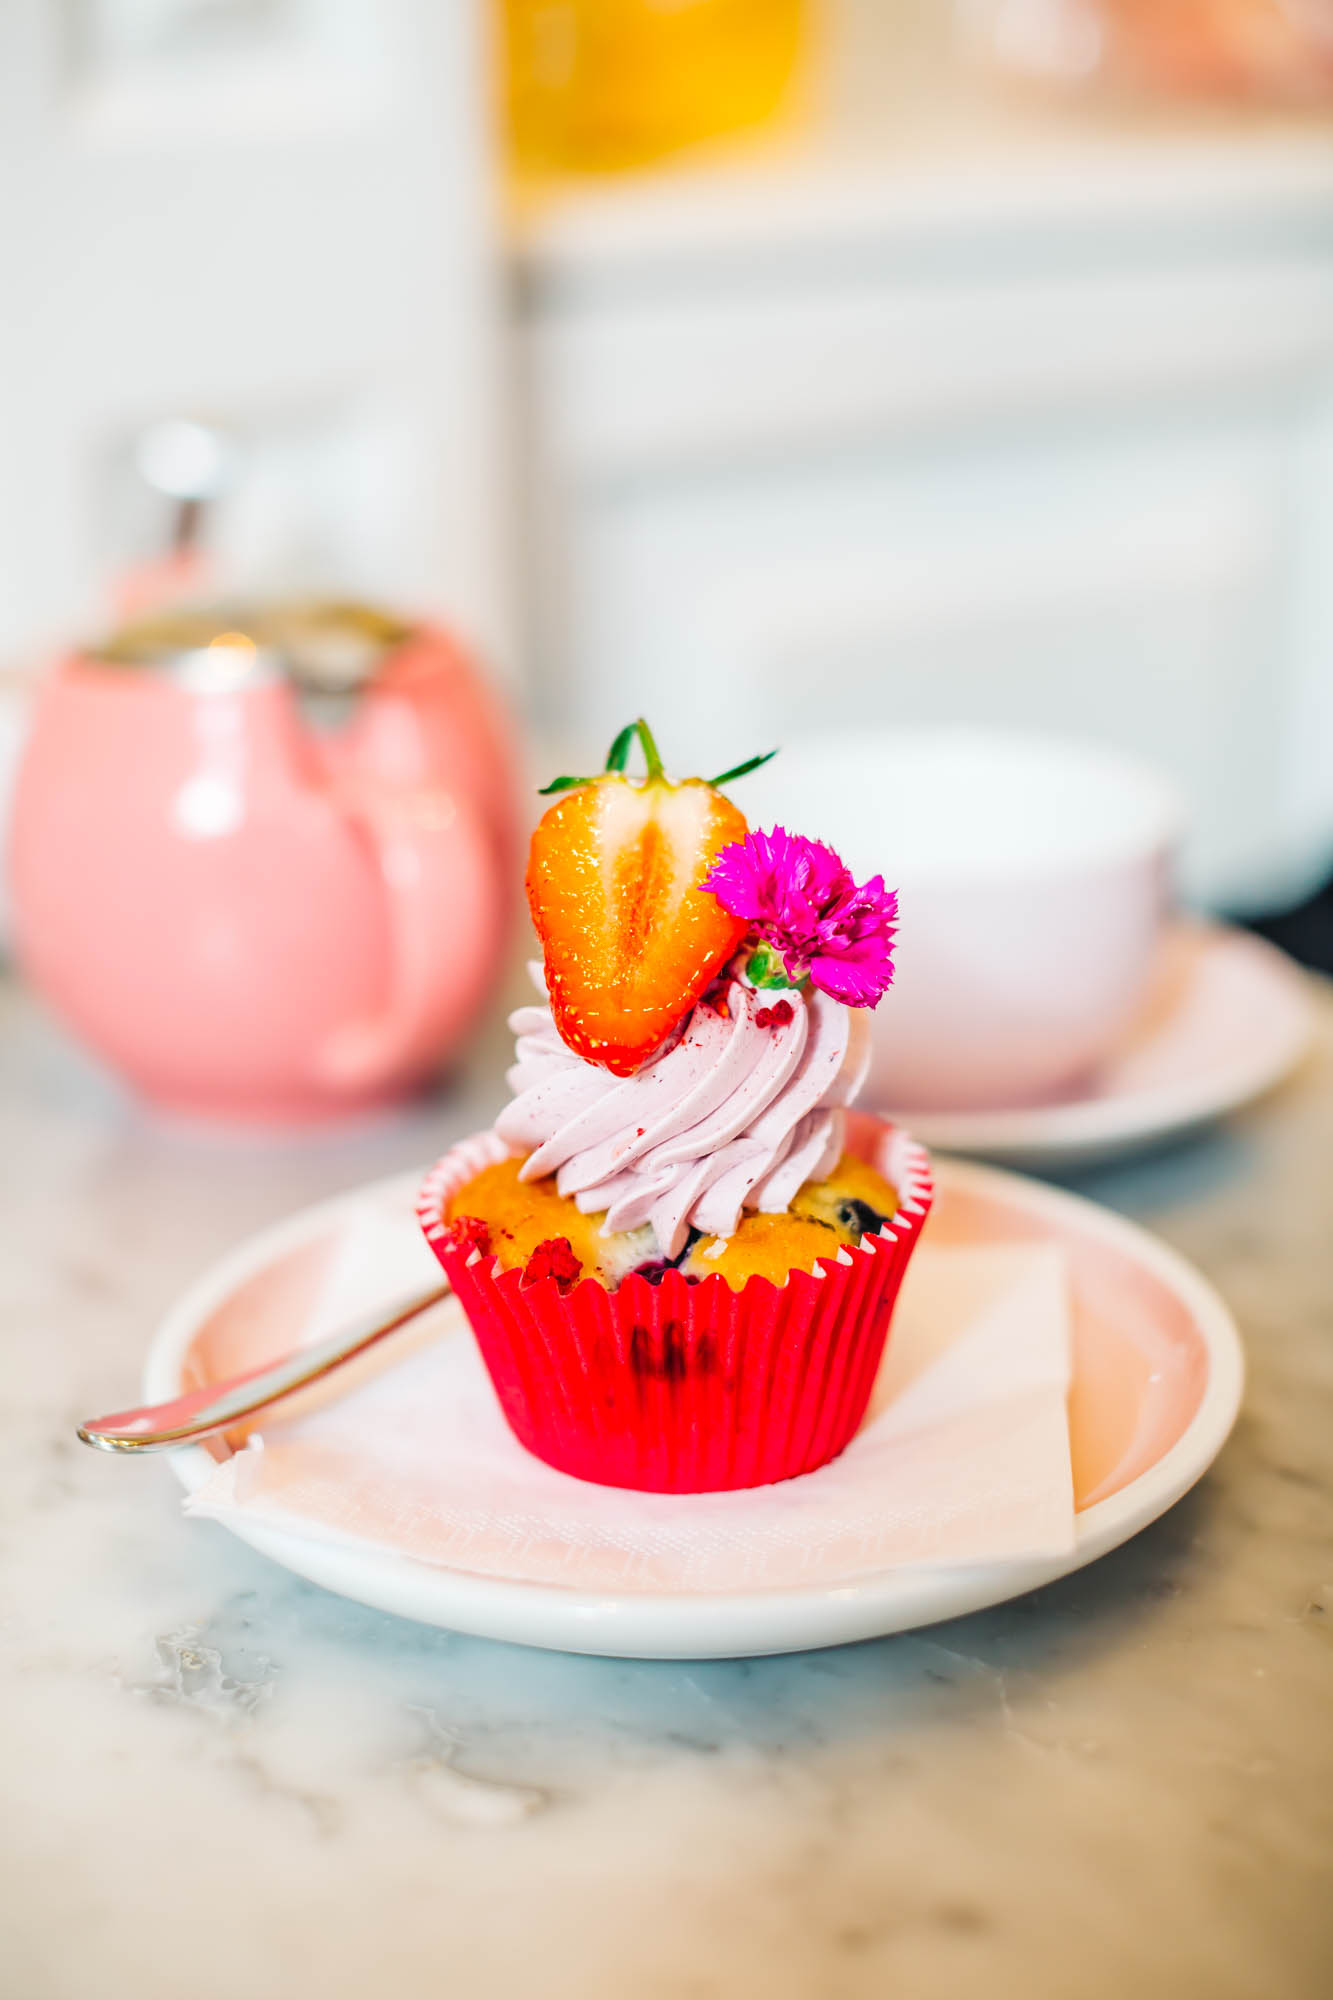 Summer Berries & Fleus Cupcake